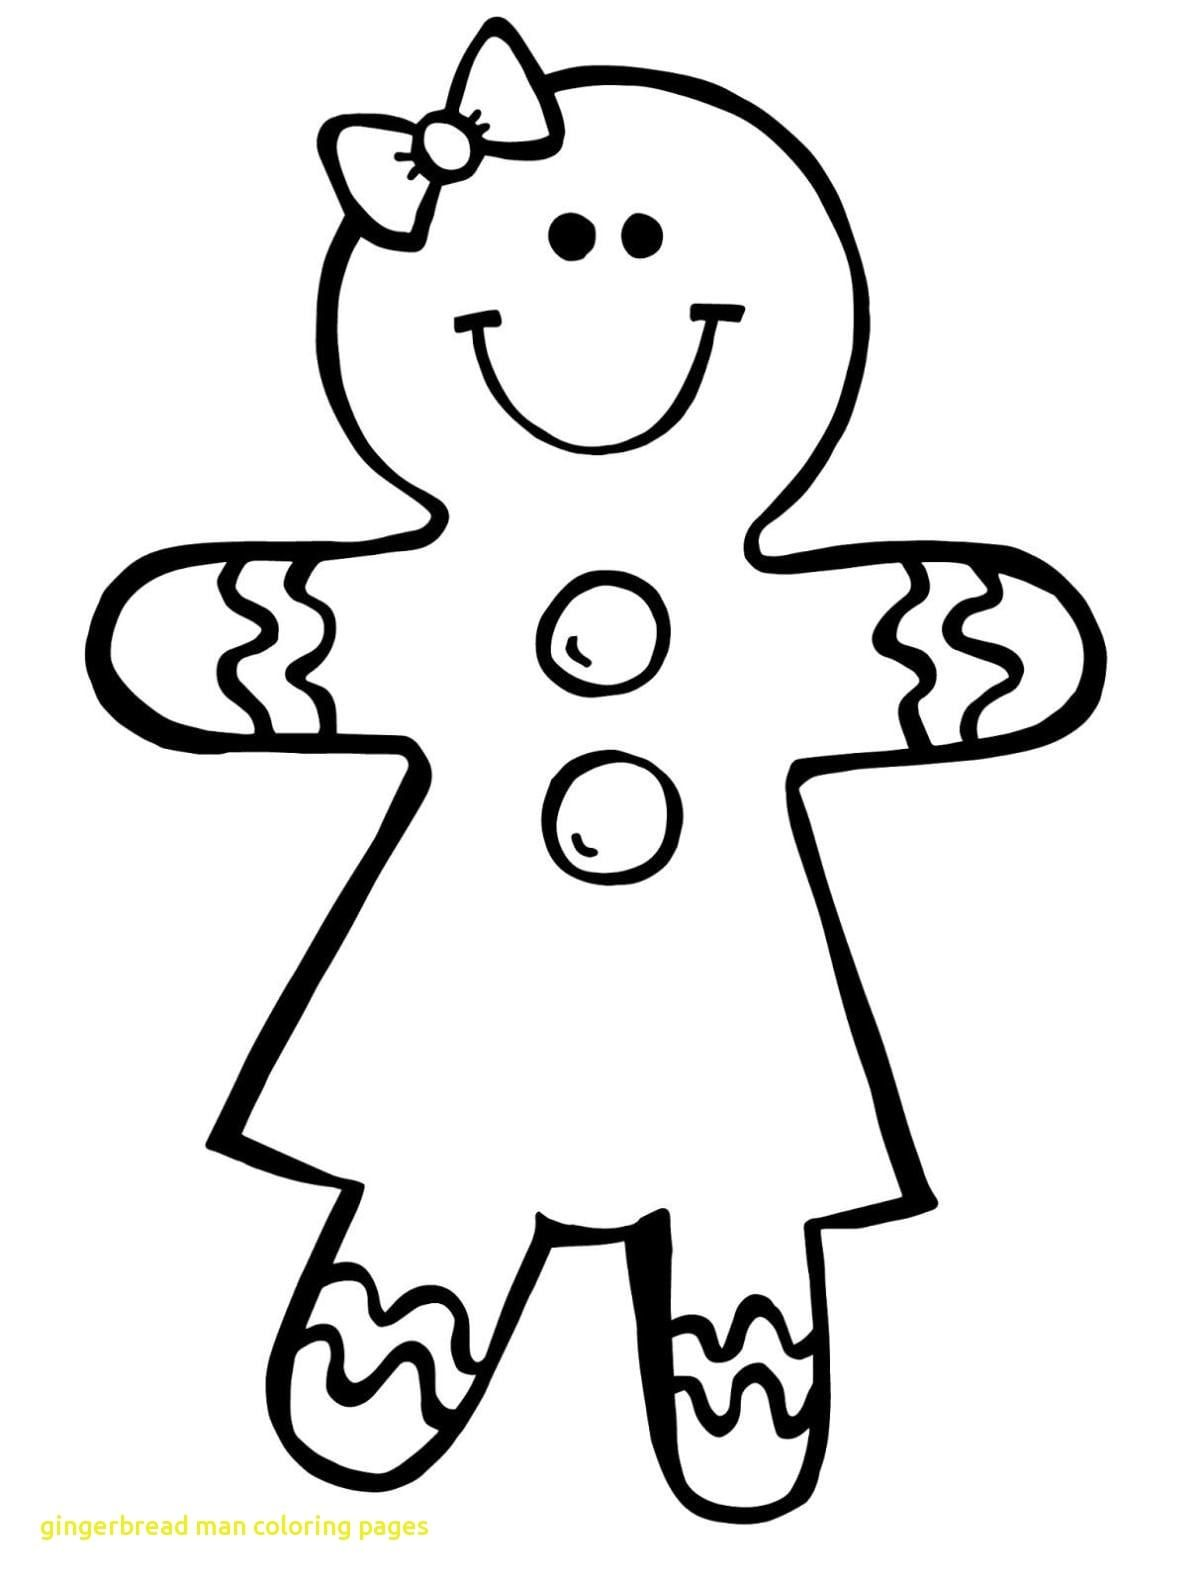 Gingerbread Man Coloring Page   Coloring Pages   Gingerbread